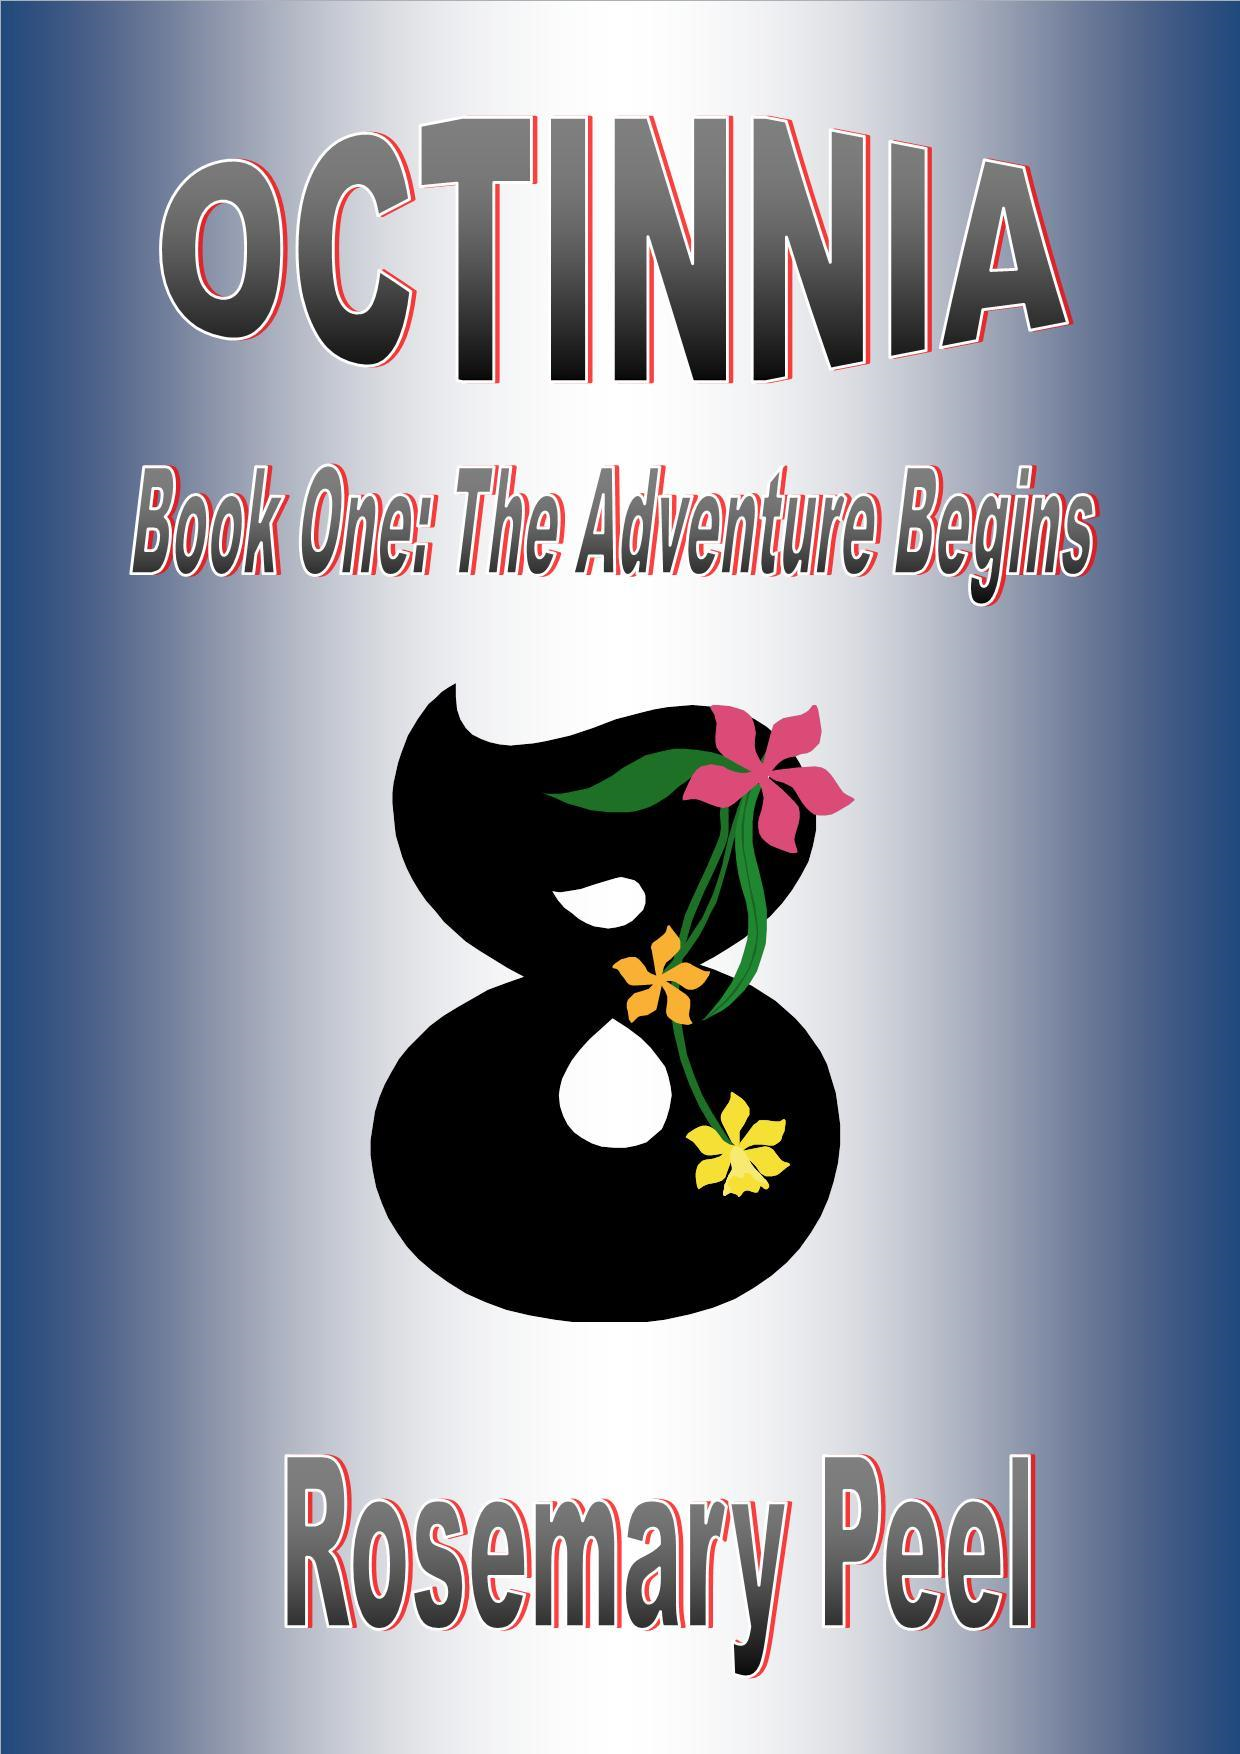 Octinnia Book One: The Adventure Begins